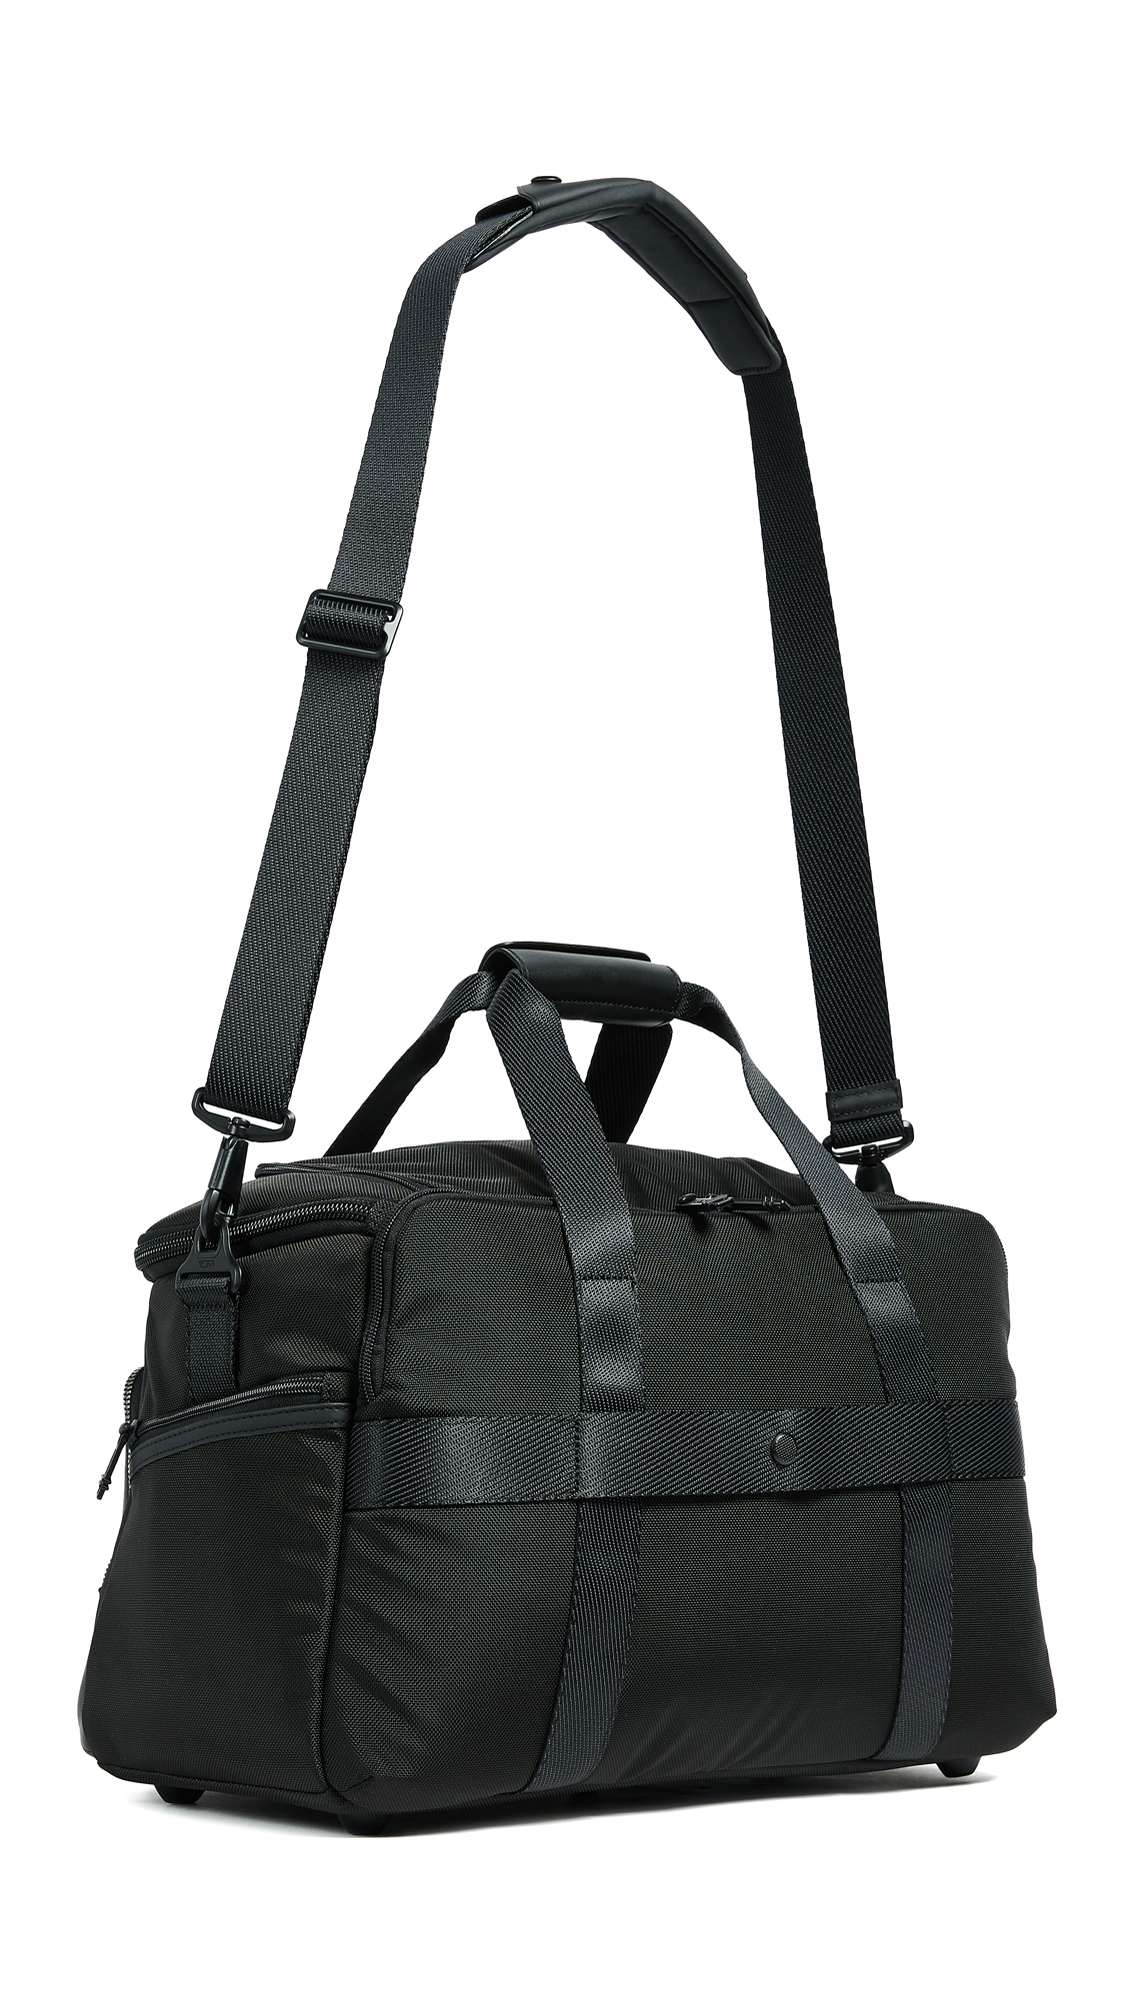 71c77d2b857b Tumi McCoy Gym Bag